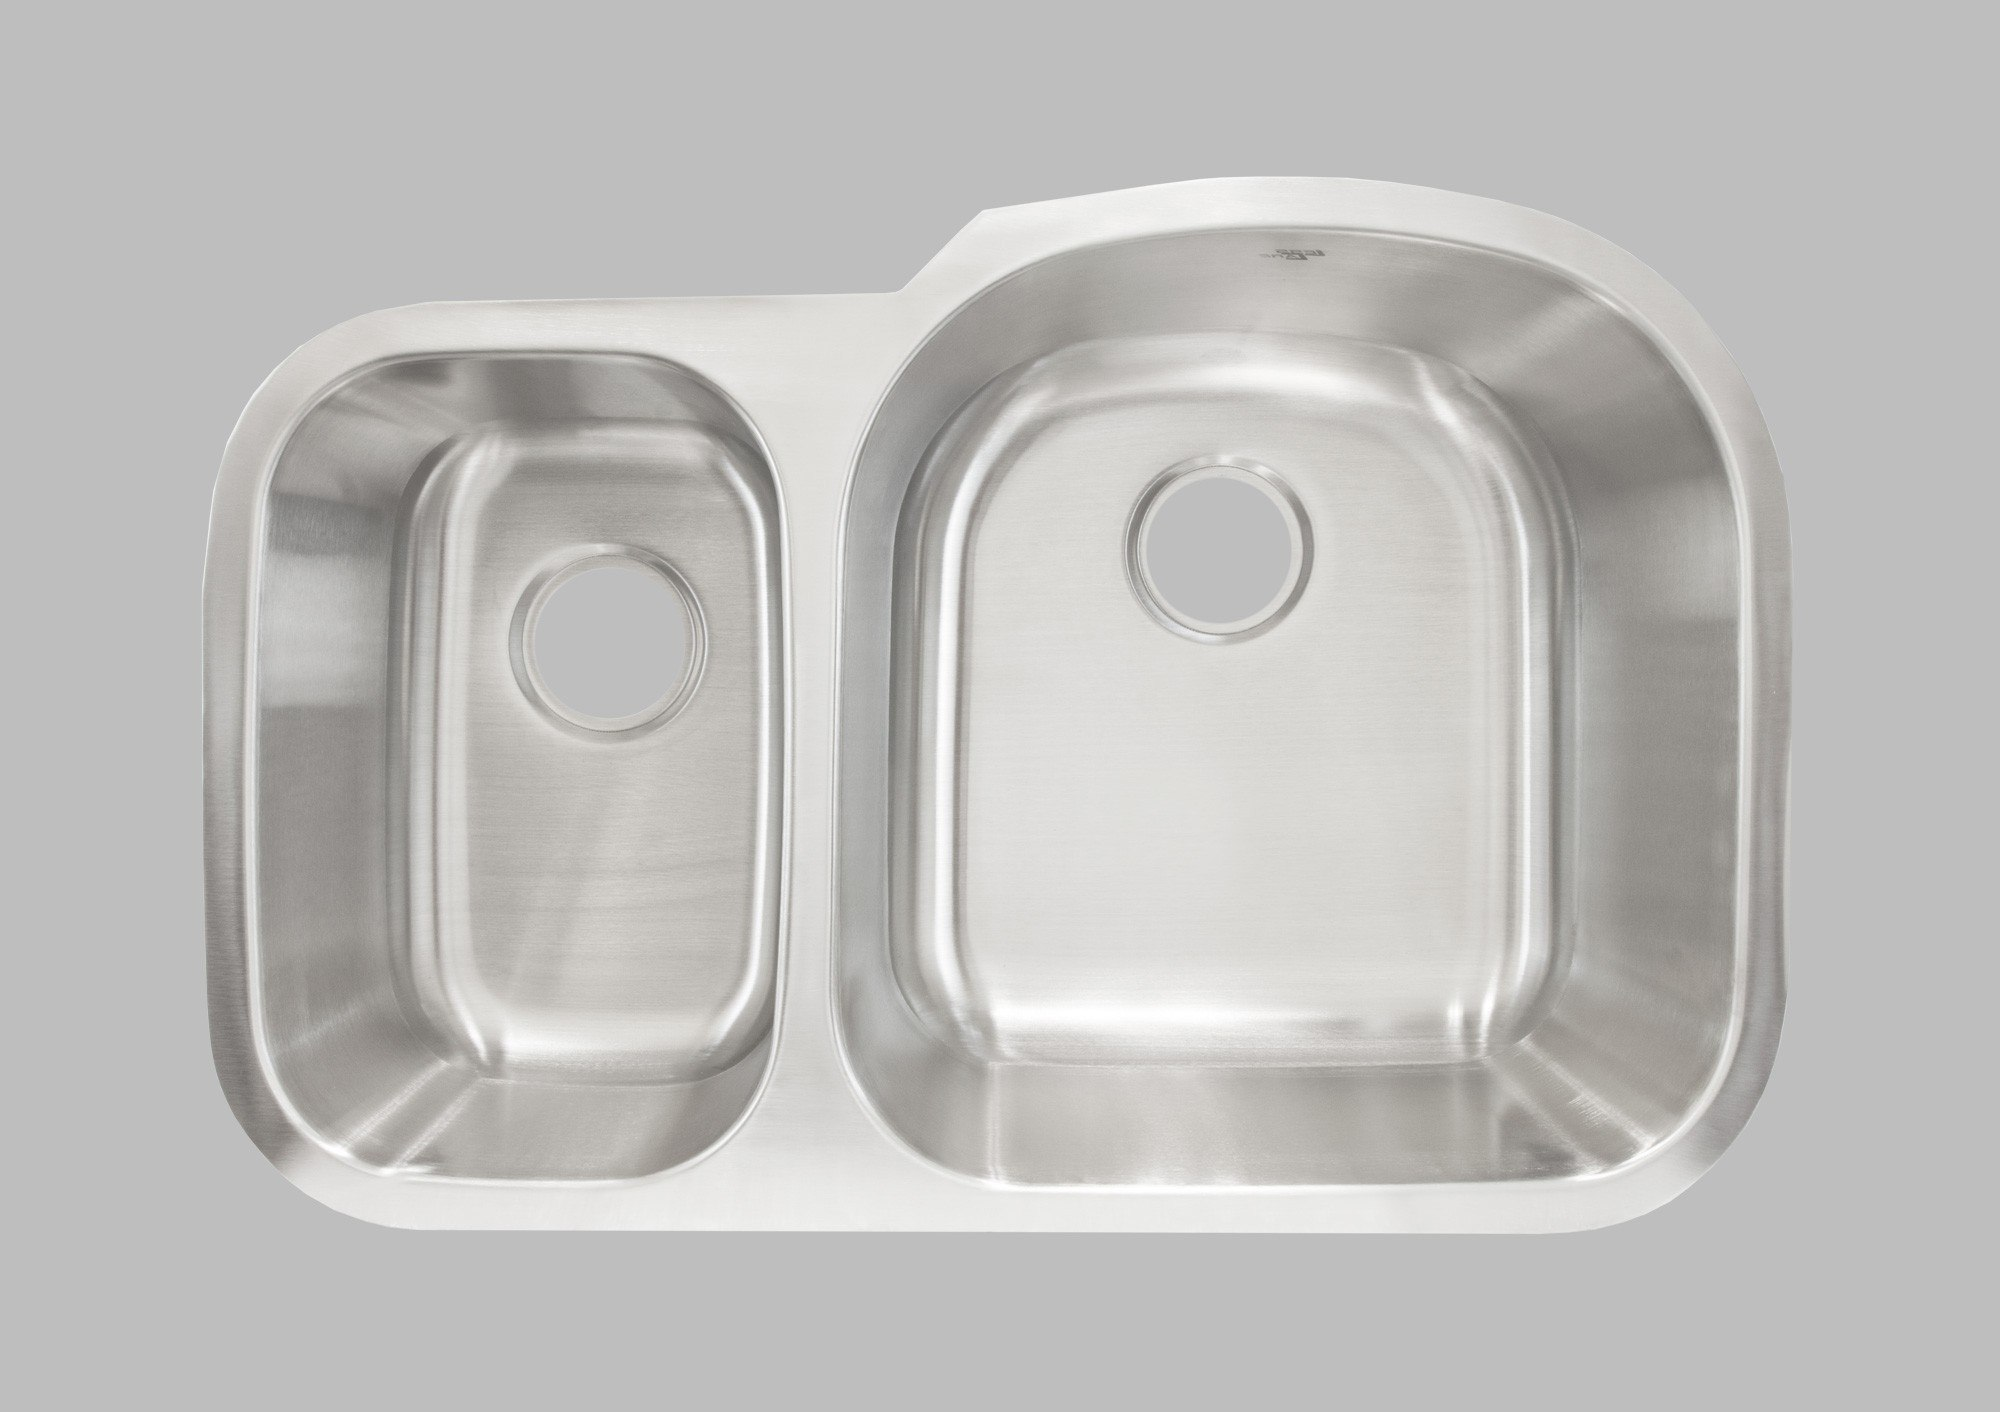 LESS CARE L201L 31INCH UNDERMOUNT DOUBLE BOWL KITCHEN SINK